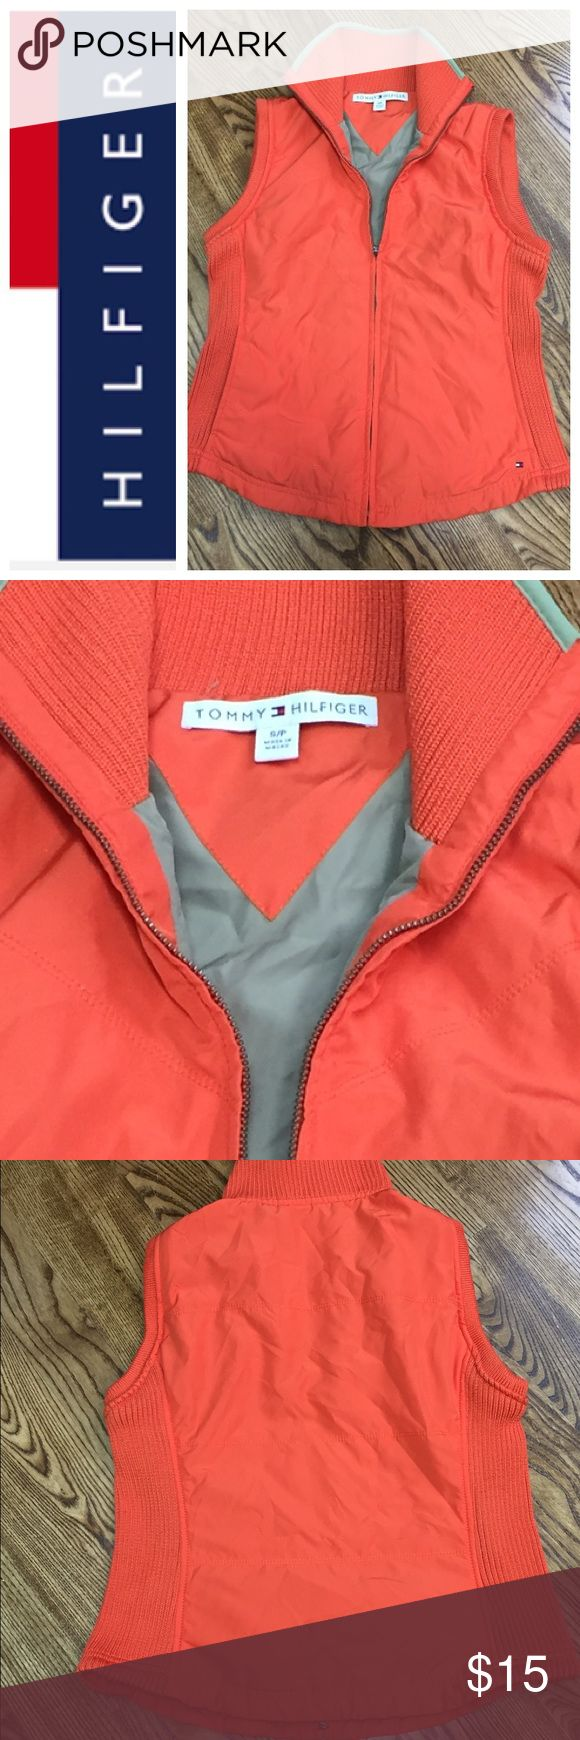 Tommy Hilfiger Orange Vest Fun and chic. This orange vest is like new , lightweight and has a full zip up front and stretch material on he side. Two side sleeve pockets in the front . Check out my closet and save on bundles . Smoke free home. Tommy Hilfiger Jackets & Coats Vests